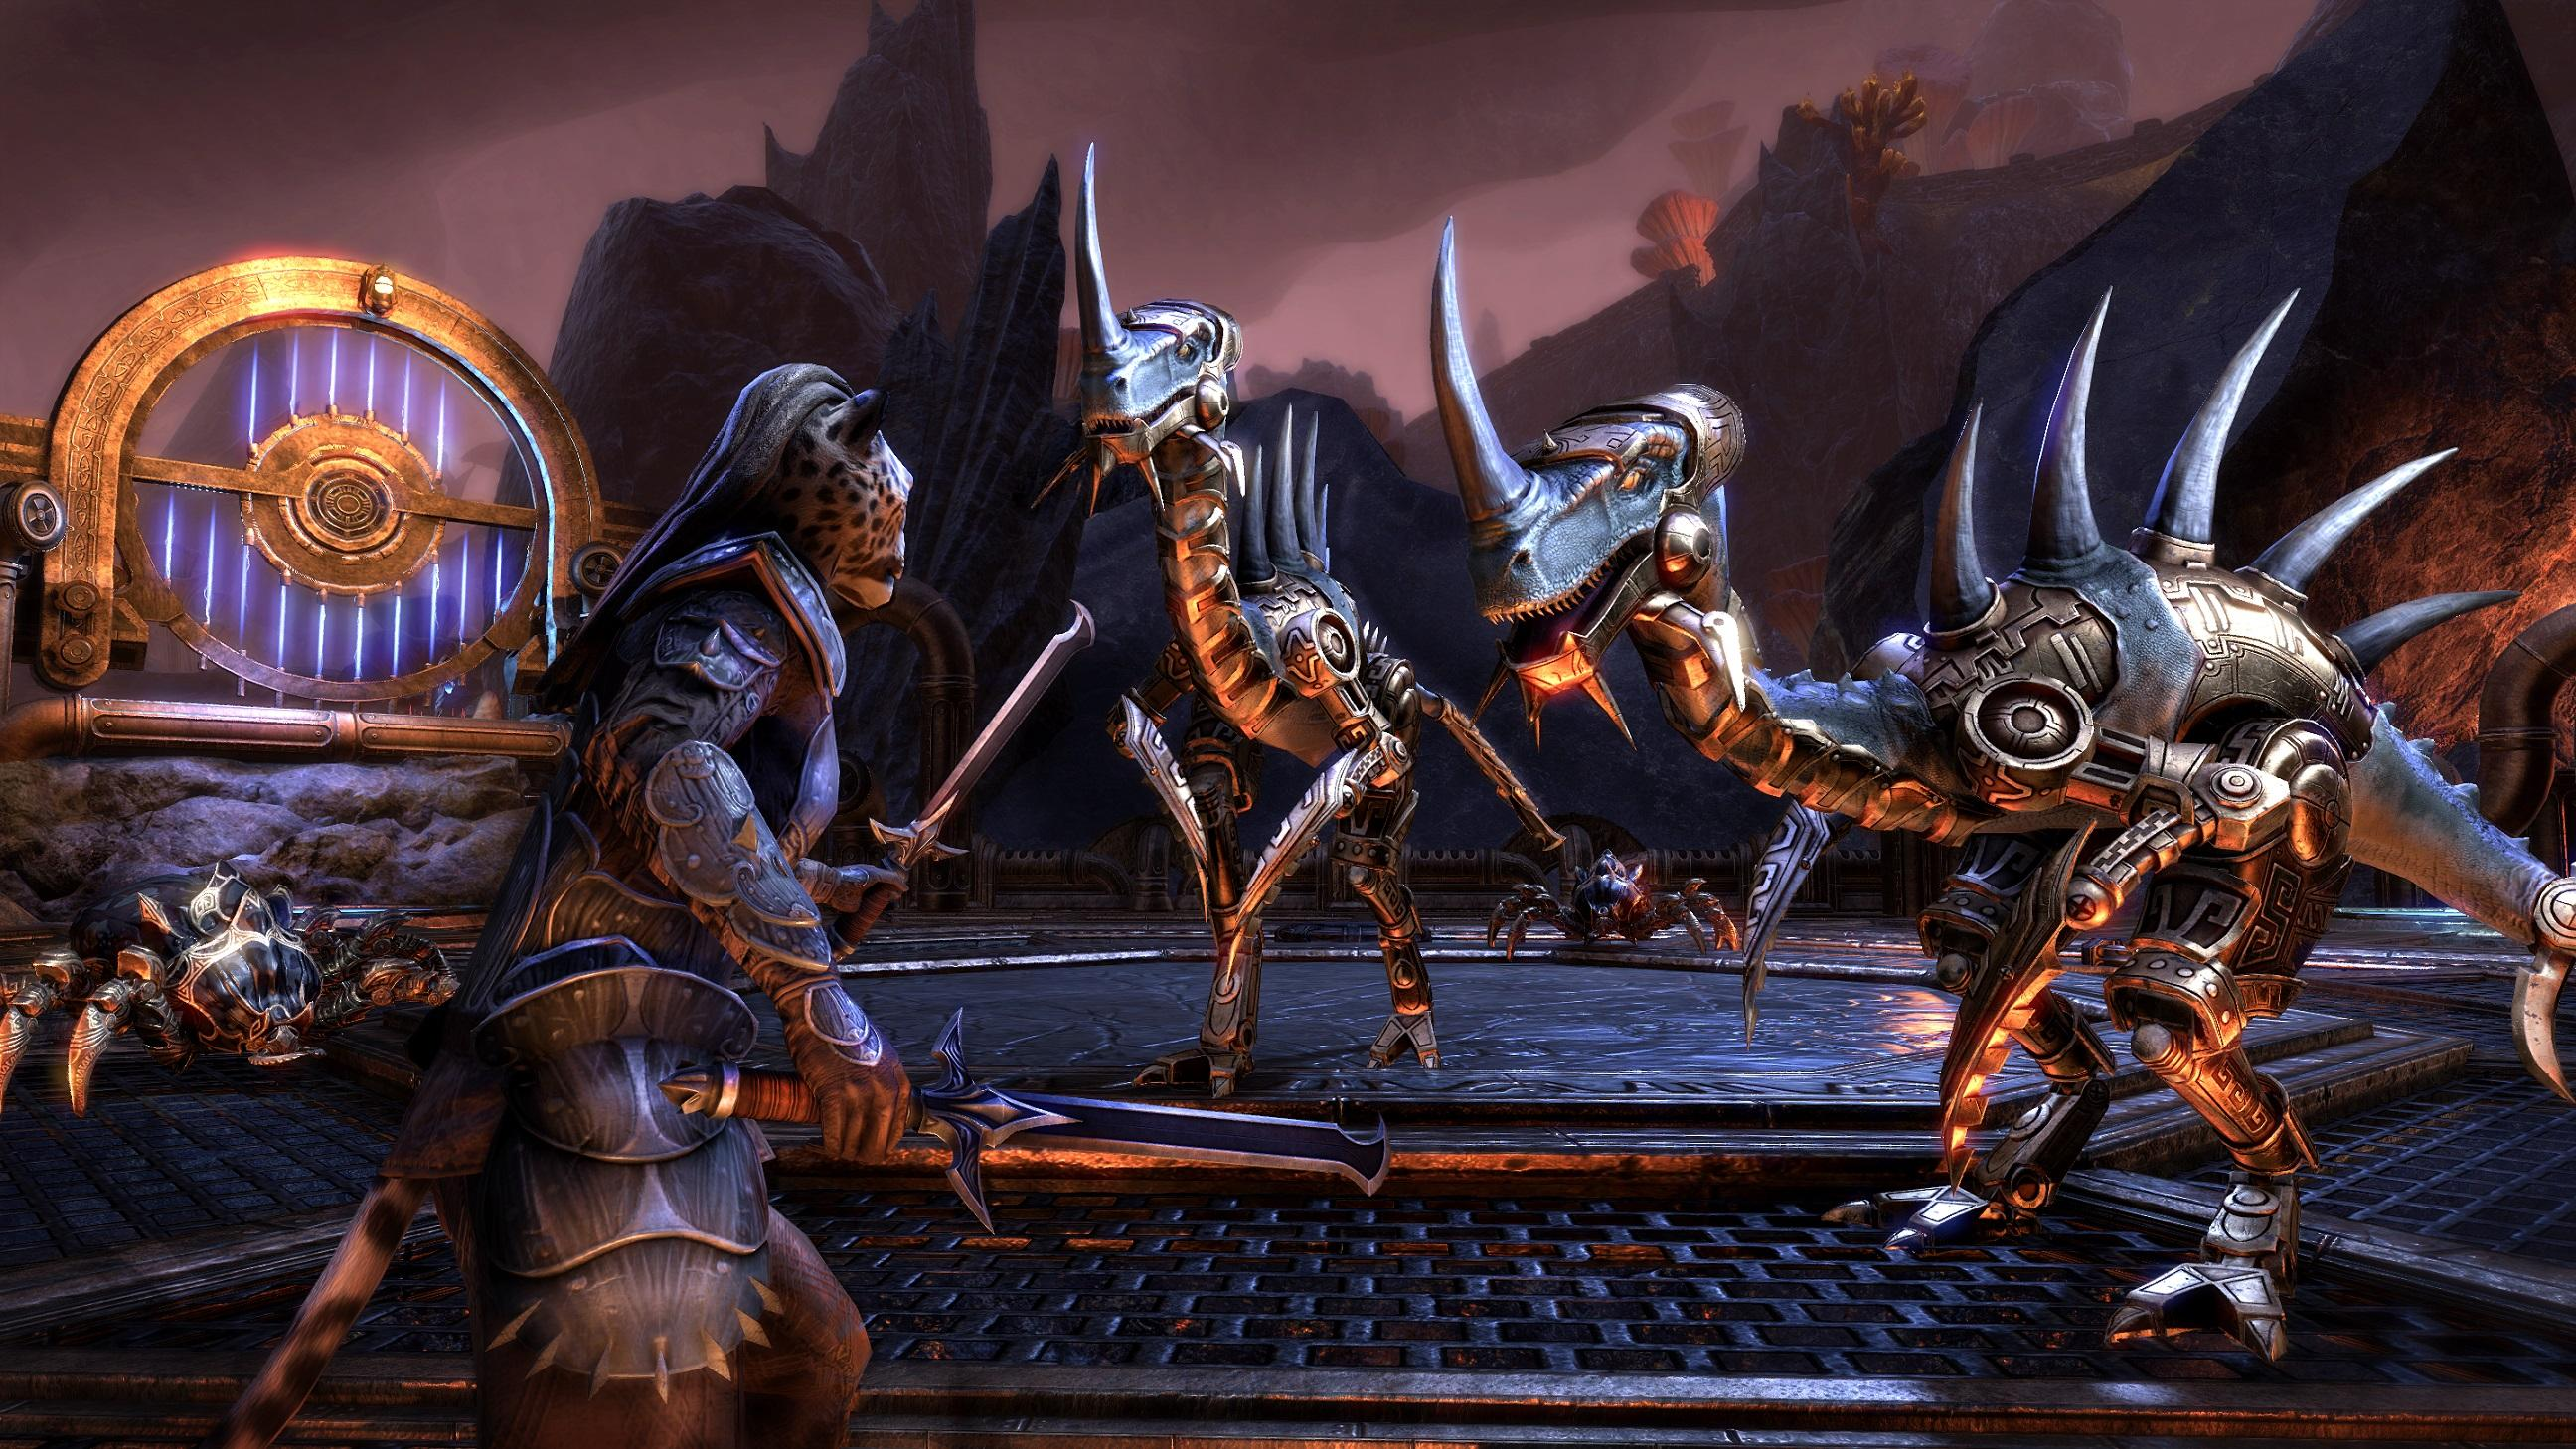 New PVE Content In ESO: Morrowind - Halls of Fabrication